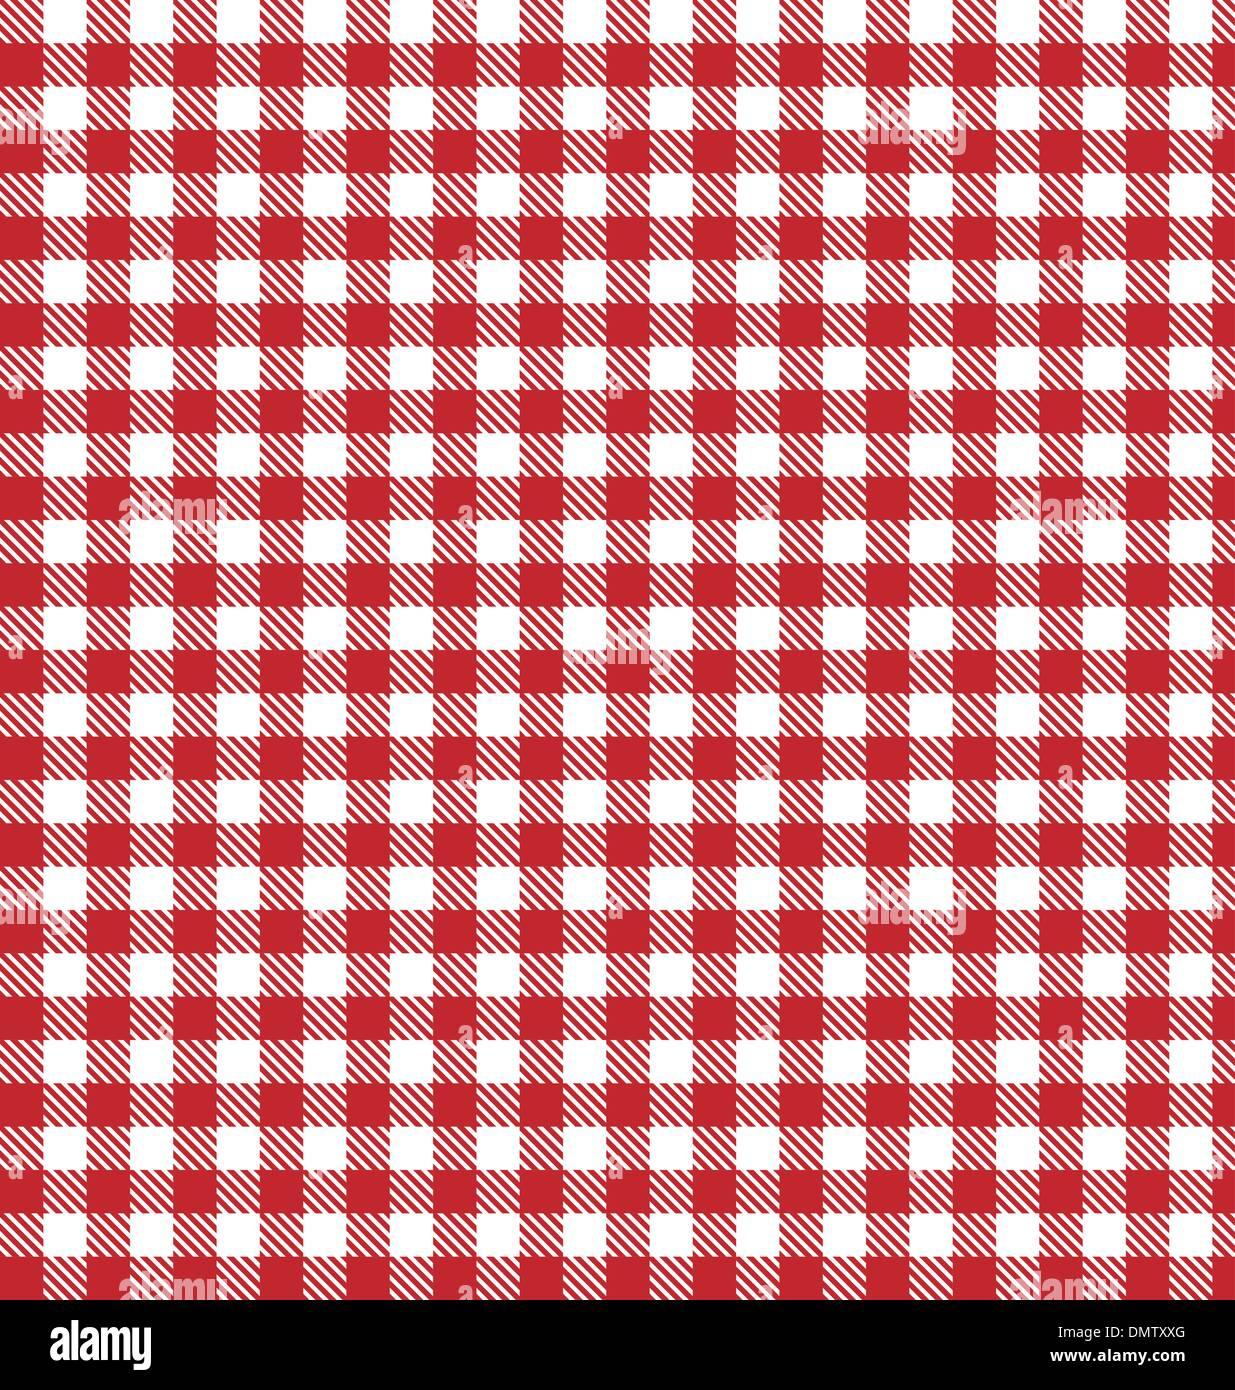 Picnic Blanket Background Stock Vector Images Alamy